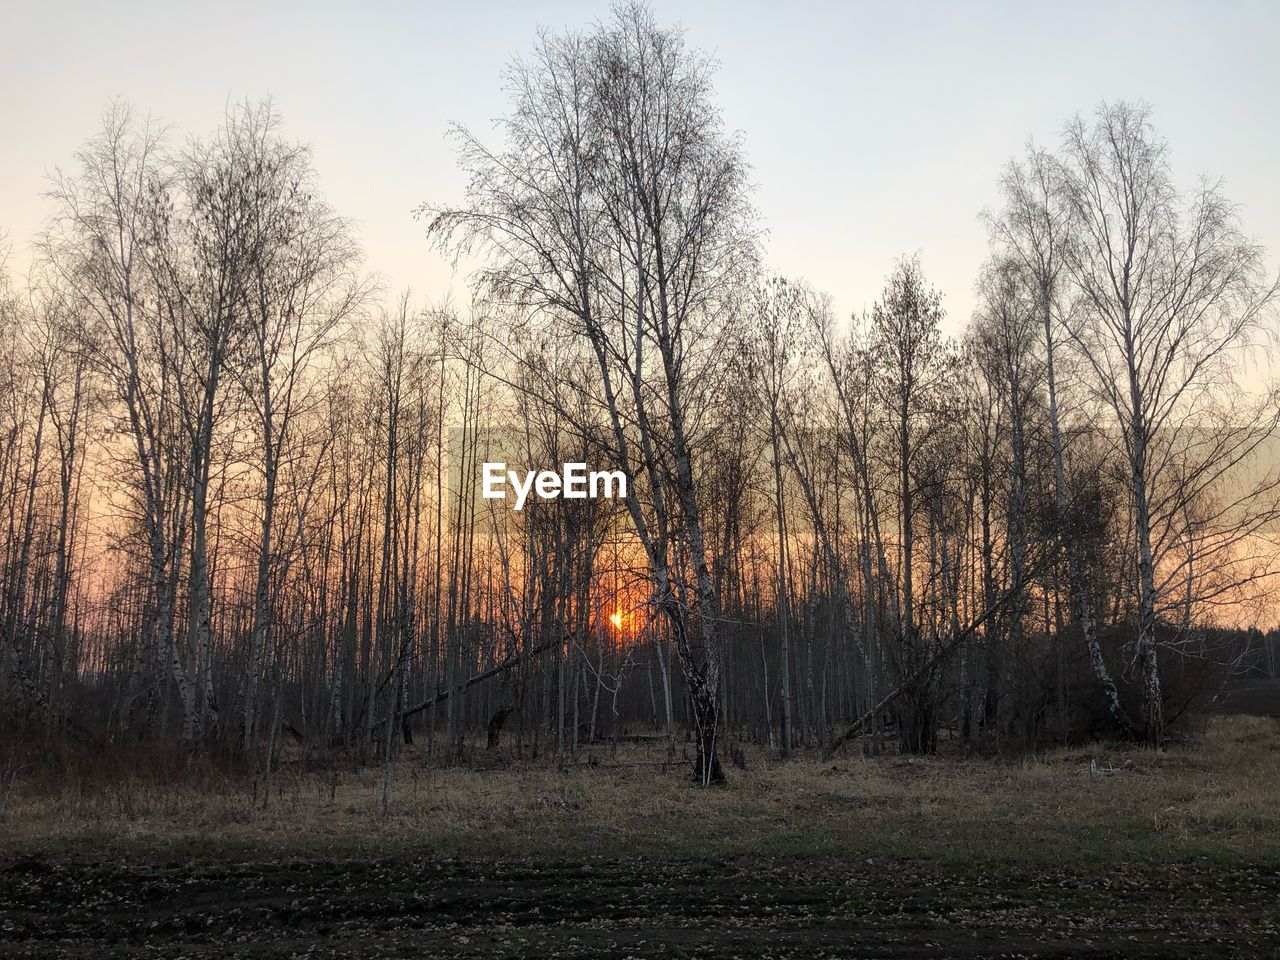 tree, plant, sky, land, bare tree, nature, forest, no people, tranquility, outdoors, sunset, scenics - nature, field, environment, non-urban scene, tranquil scene, woodland, landscape, beauty in nature, orange color